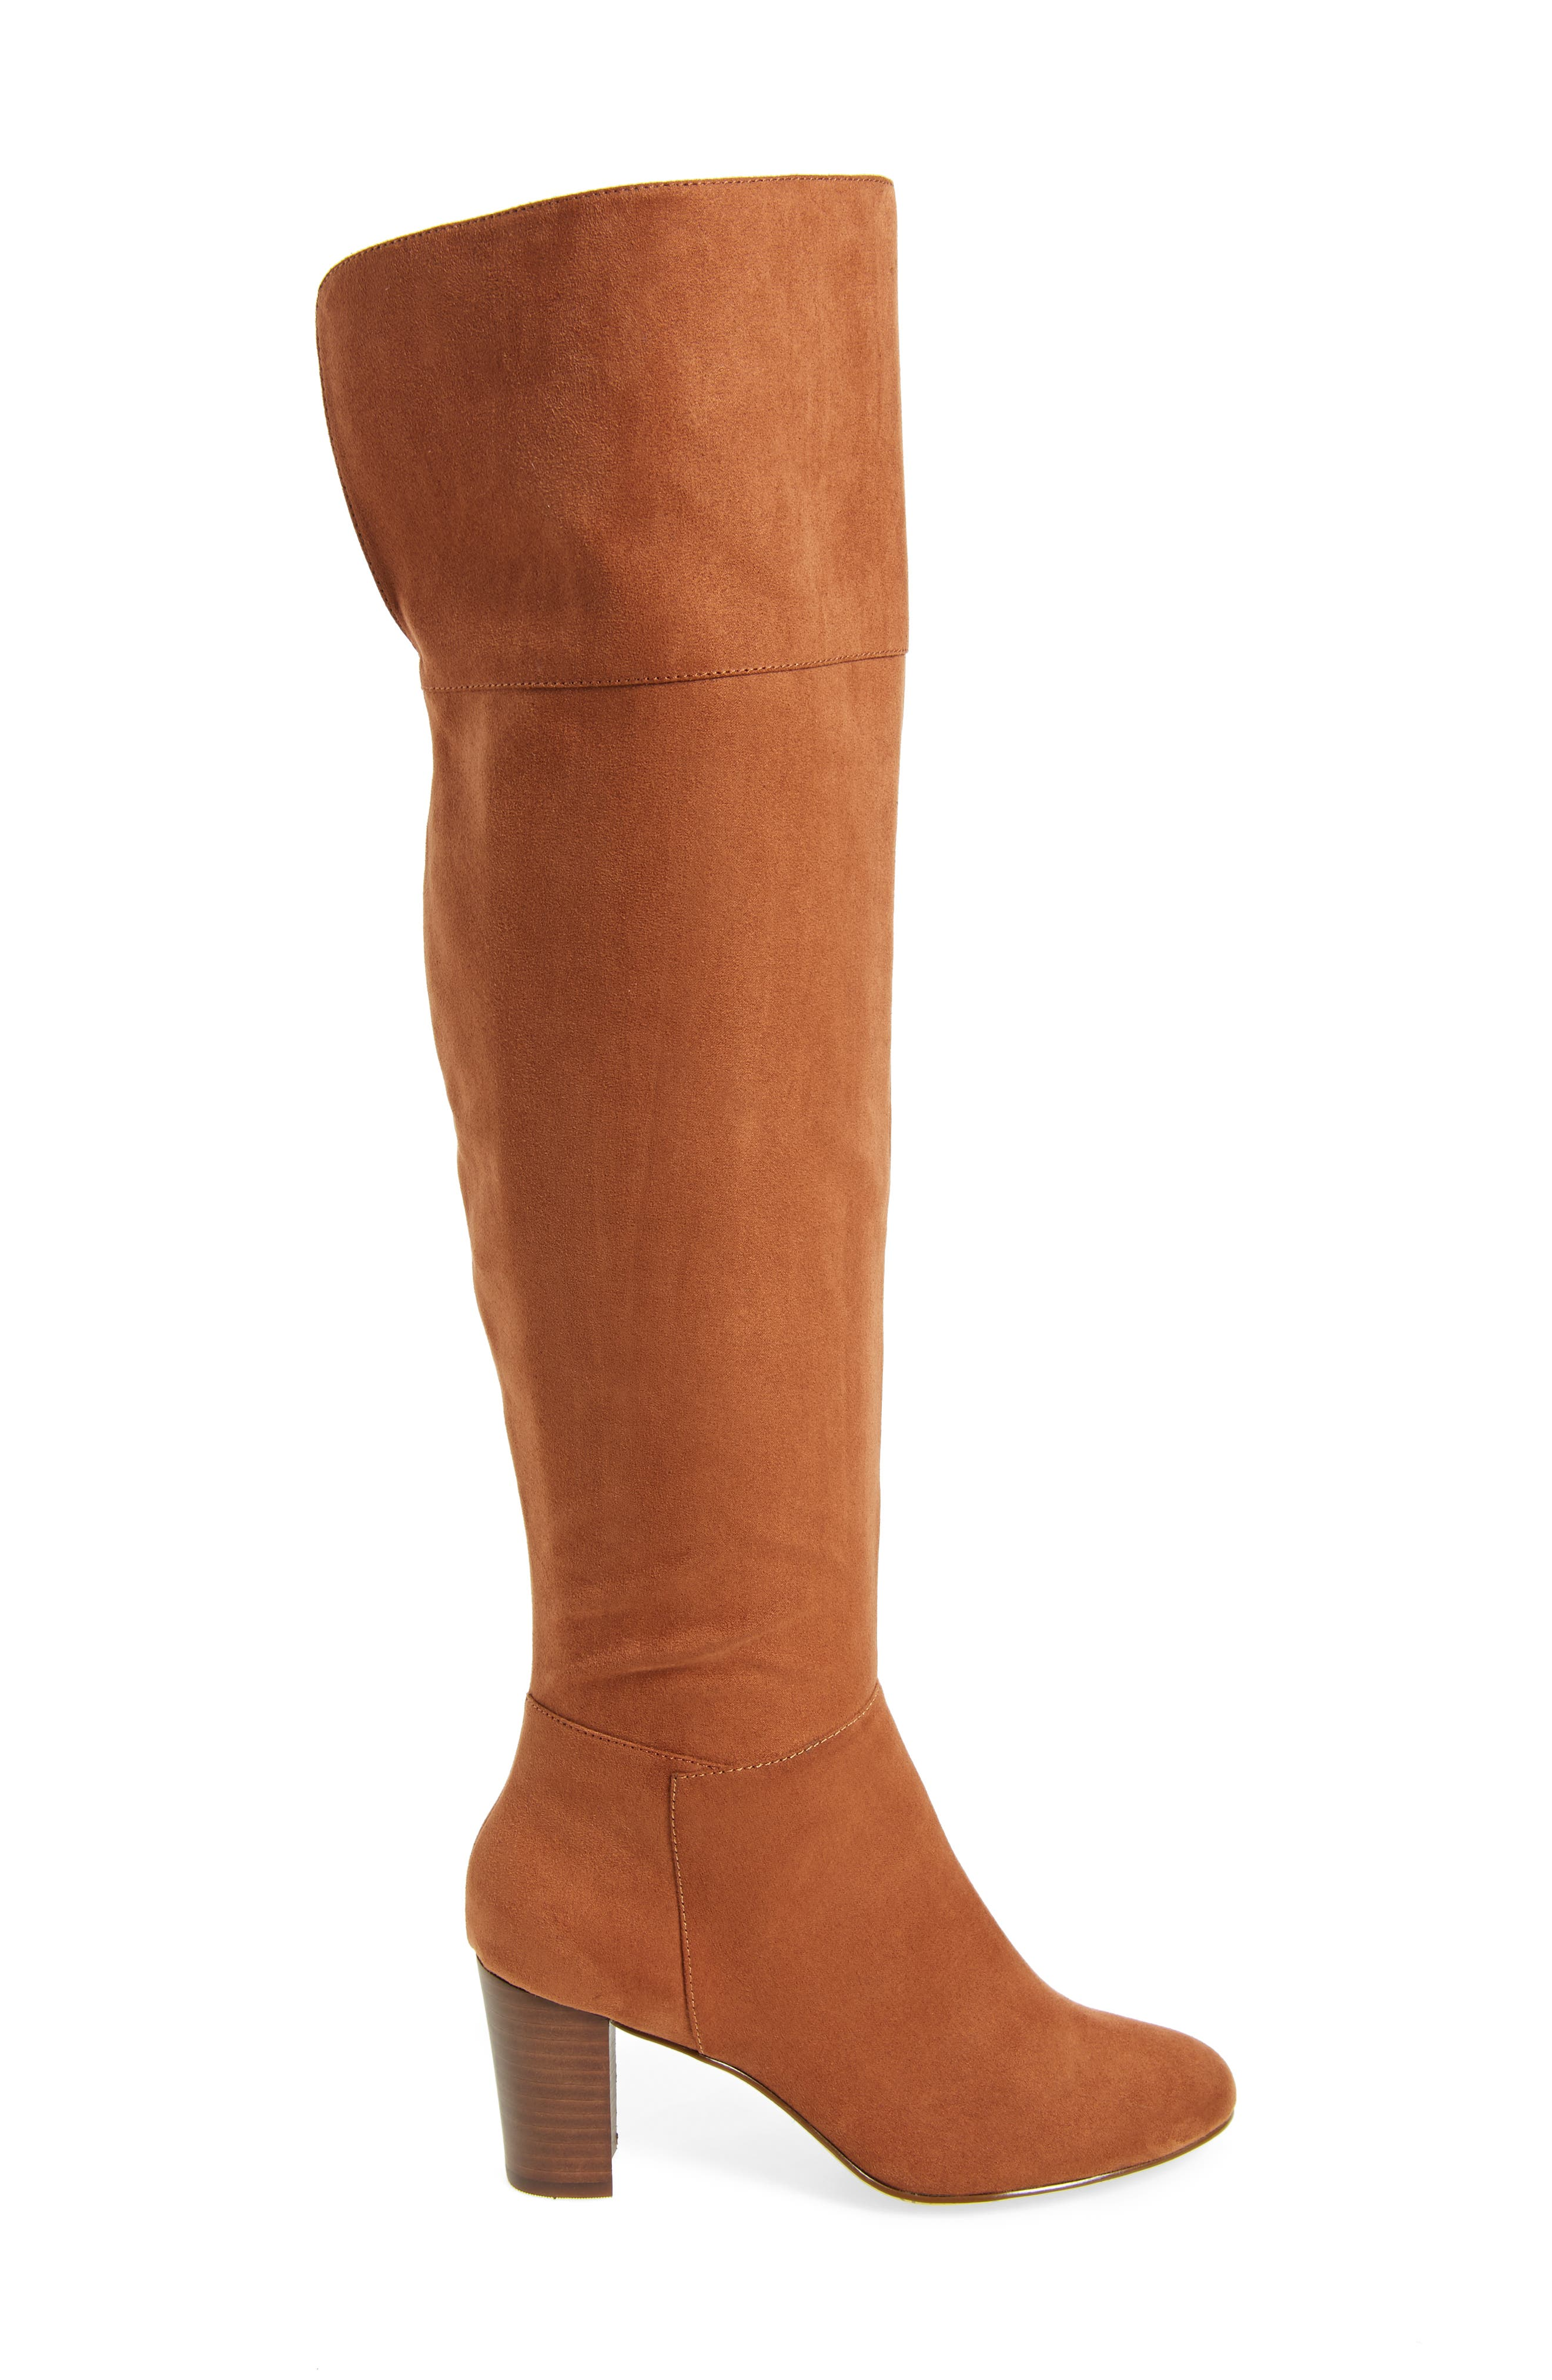 Telluride II Over the Knee Boot,                             Alternate thumbnail 3, color,                             Camel Suede